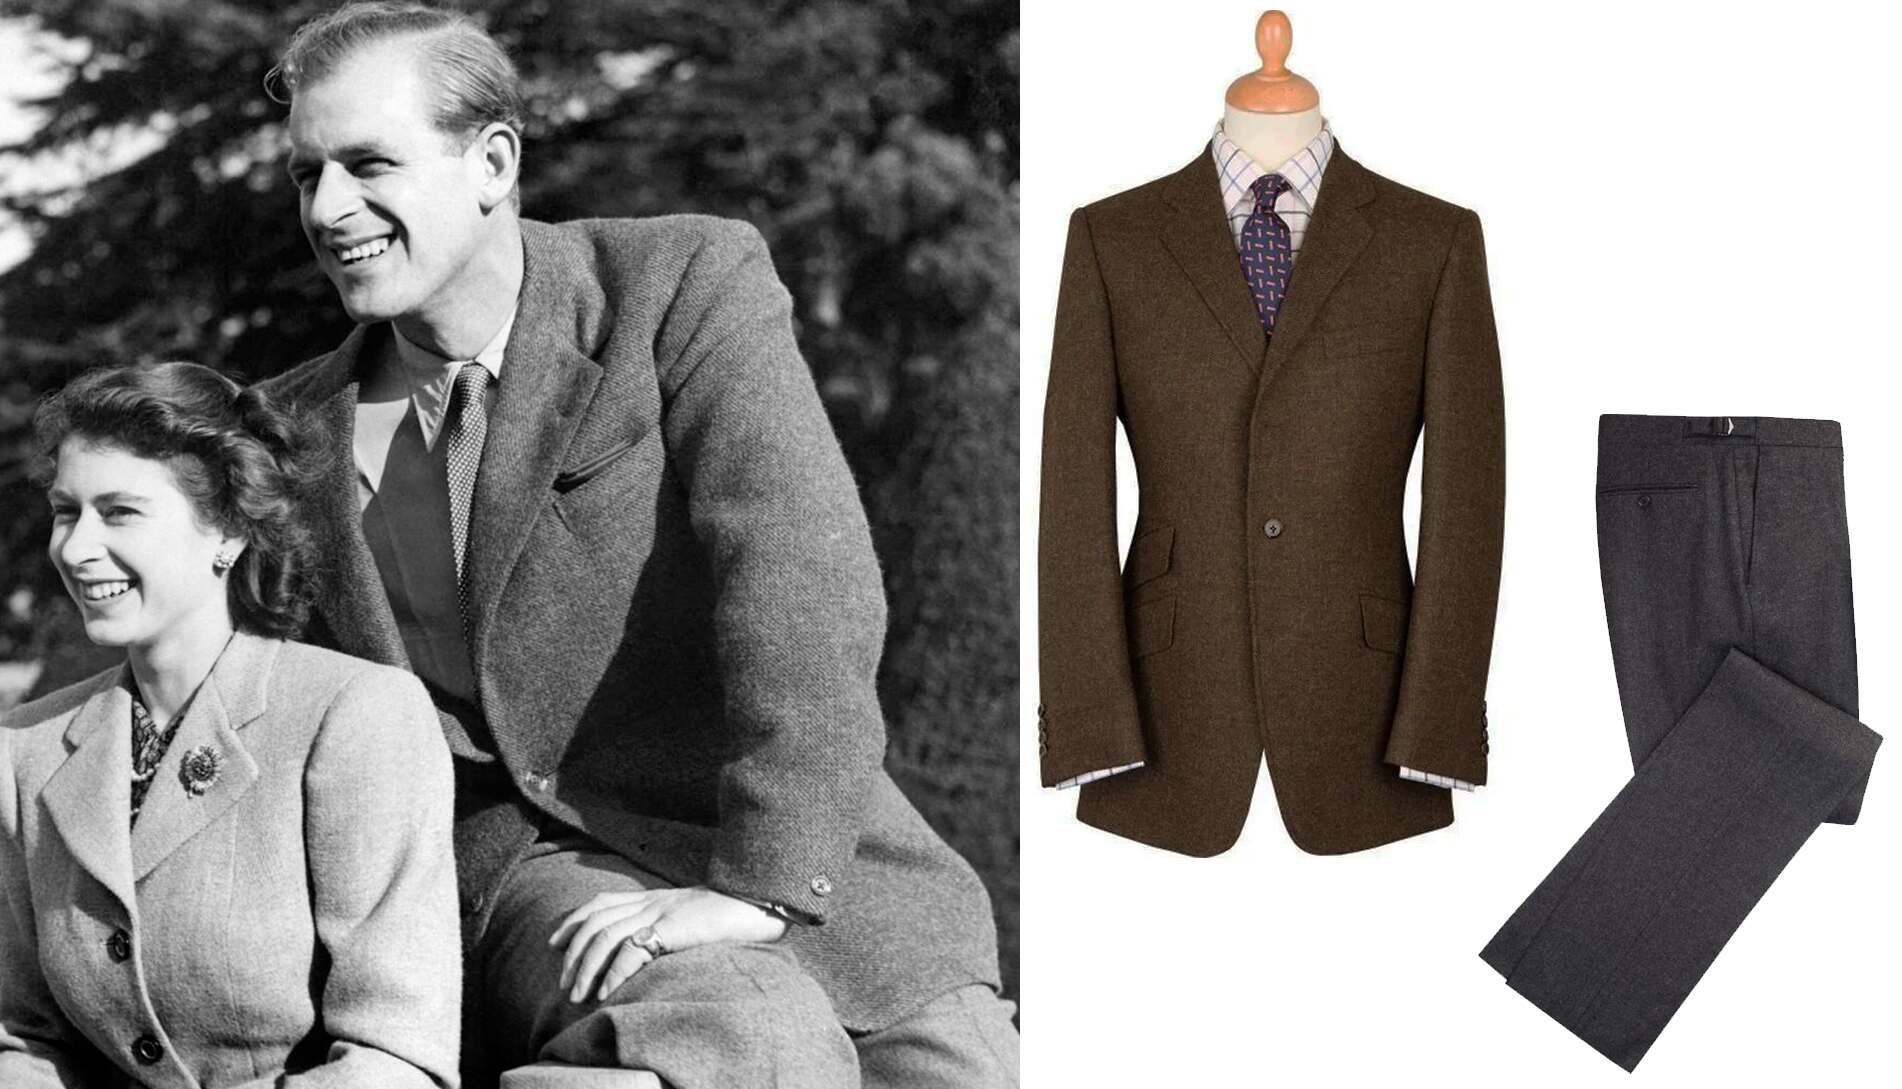 Prince Philip. An early example of the Duke's easy elegance, relaxed but smart, a classic British look.